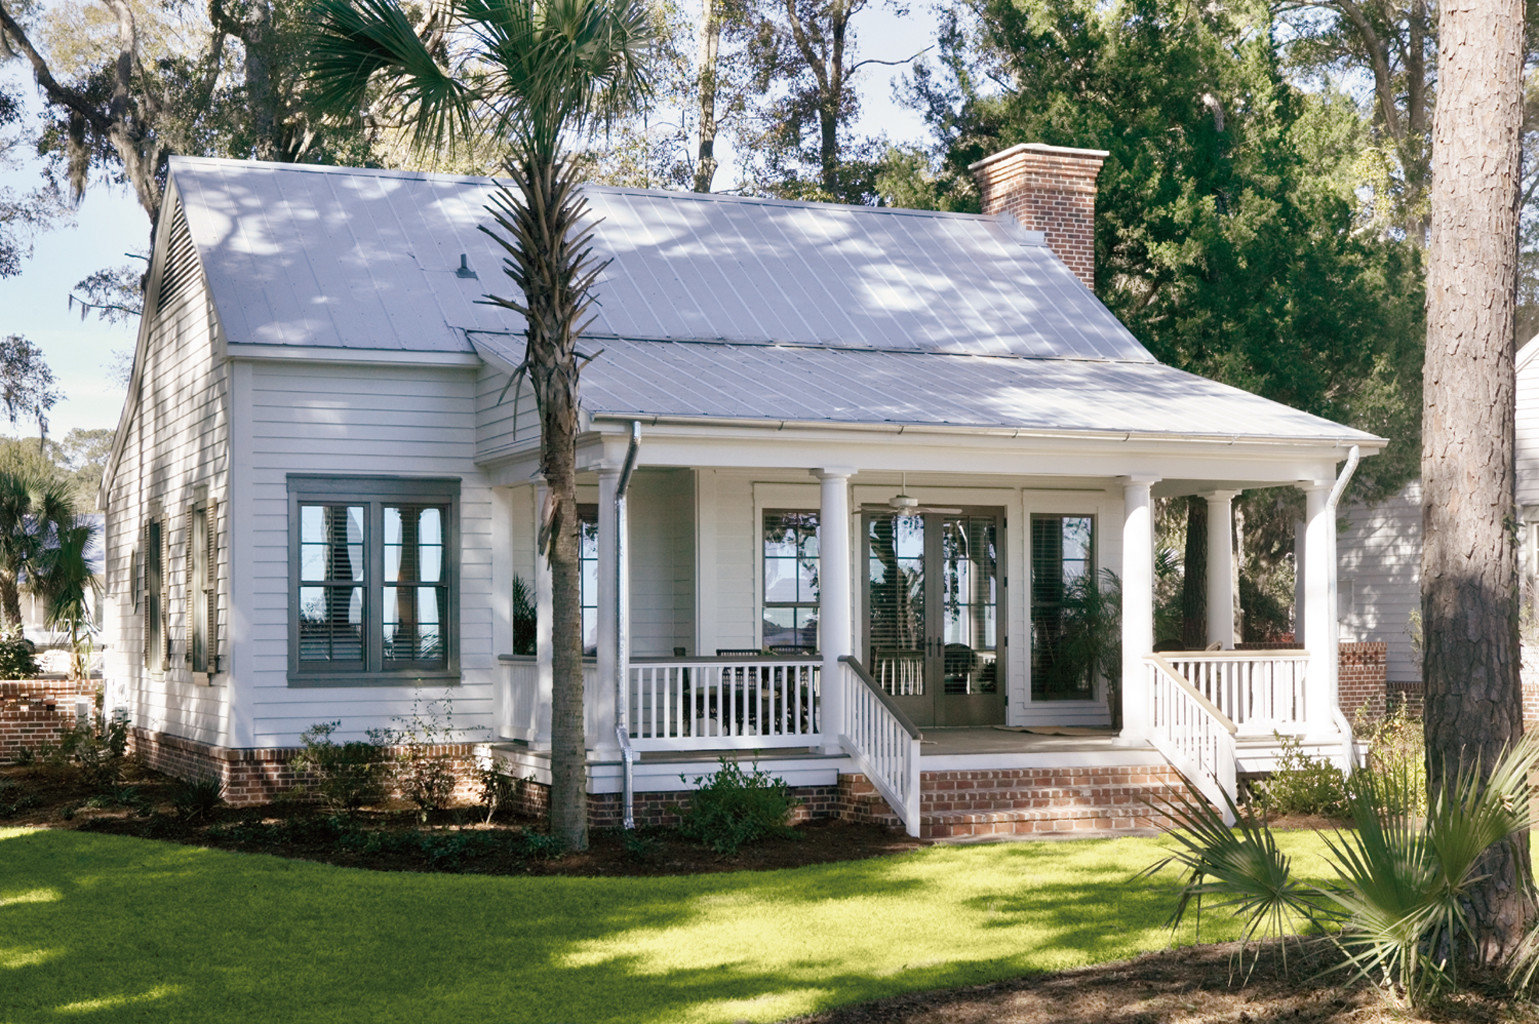 Country Exterior Inn Waterfront tree grass building house home property cottage orangery farmhouse porch Villa residential area mansion siding backyard outdoor structure